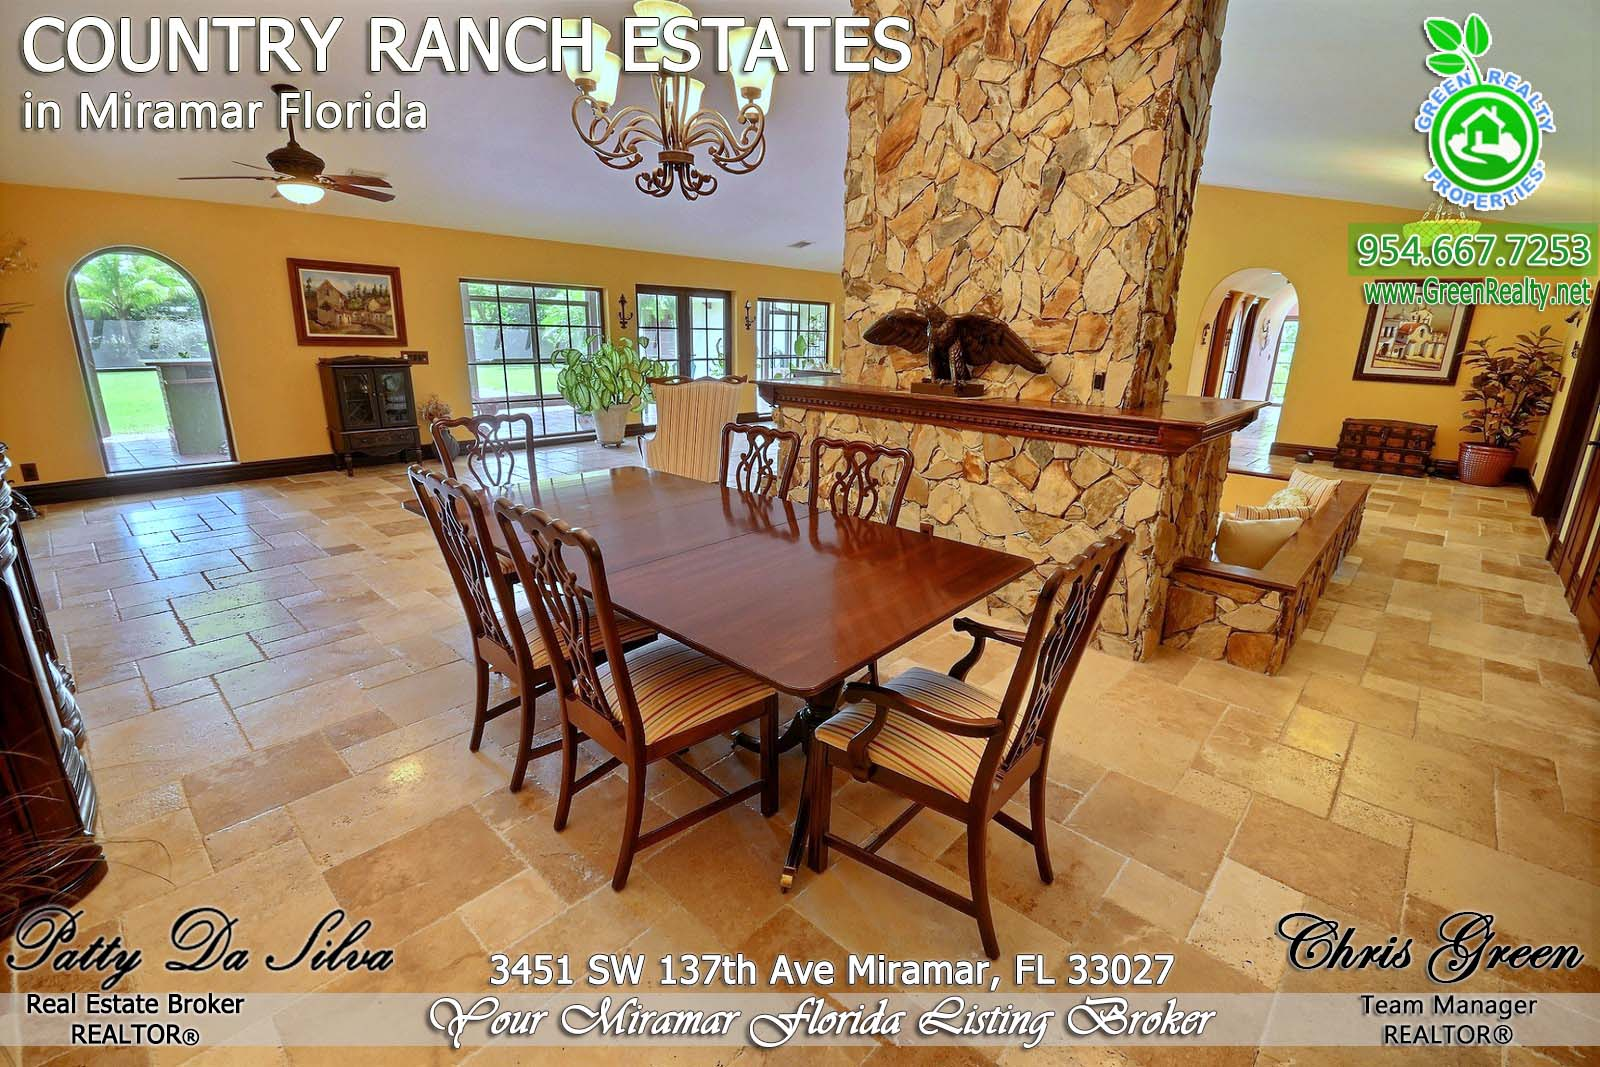 19 Luxury Homes in County Ranch Estates